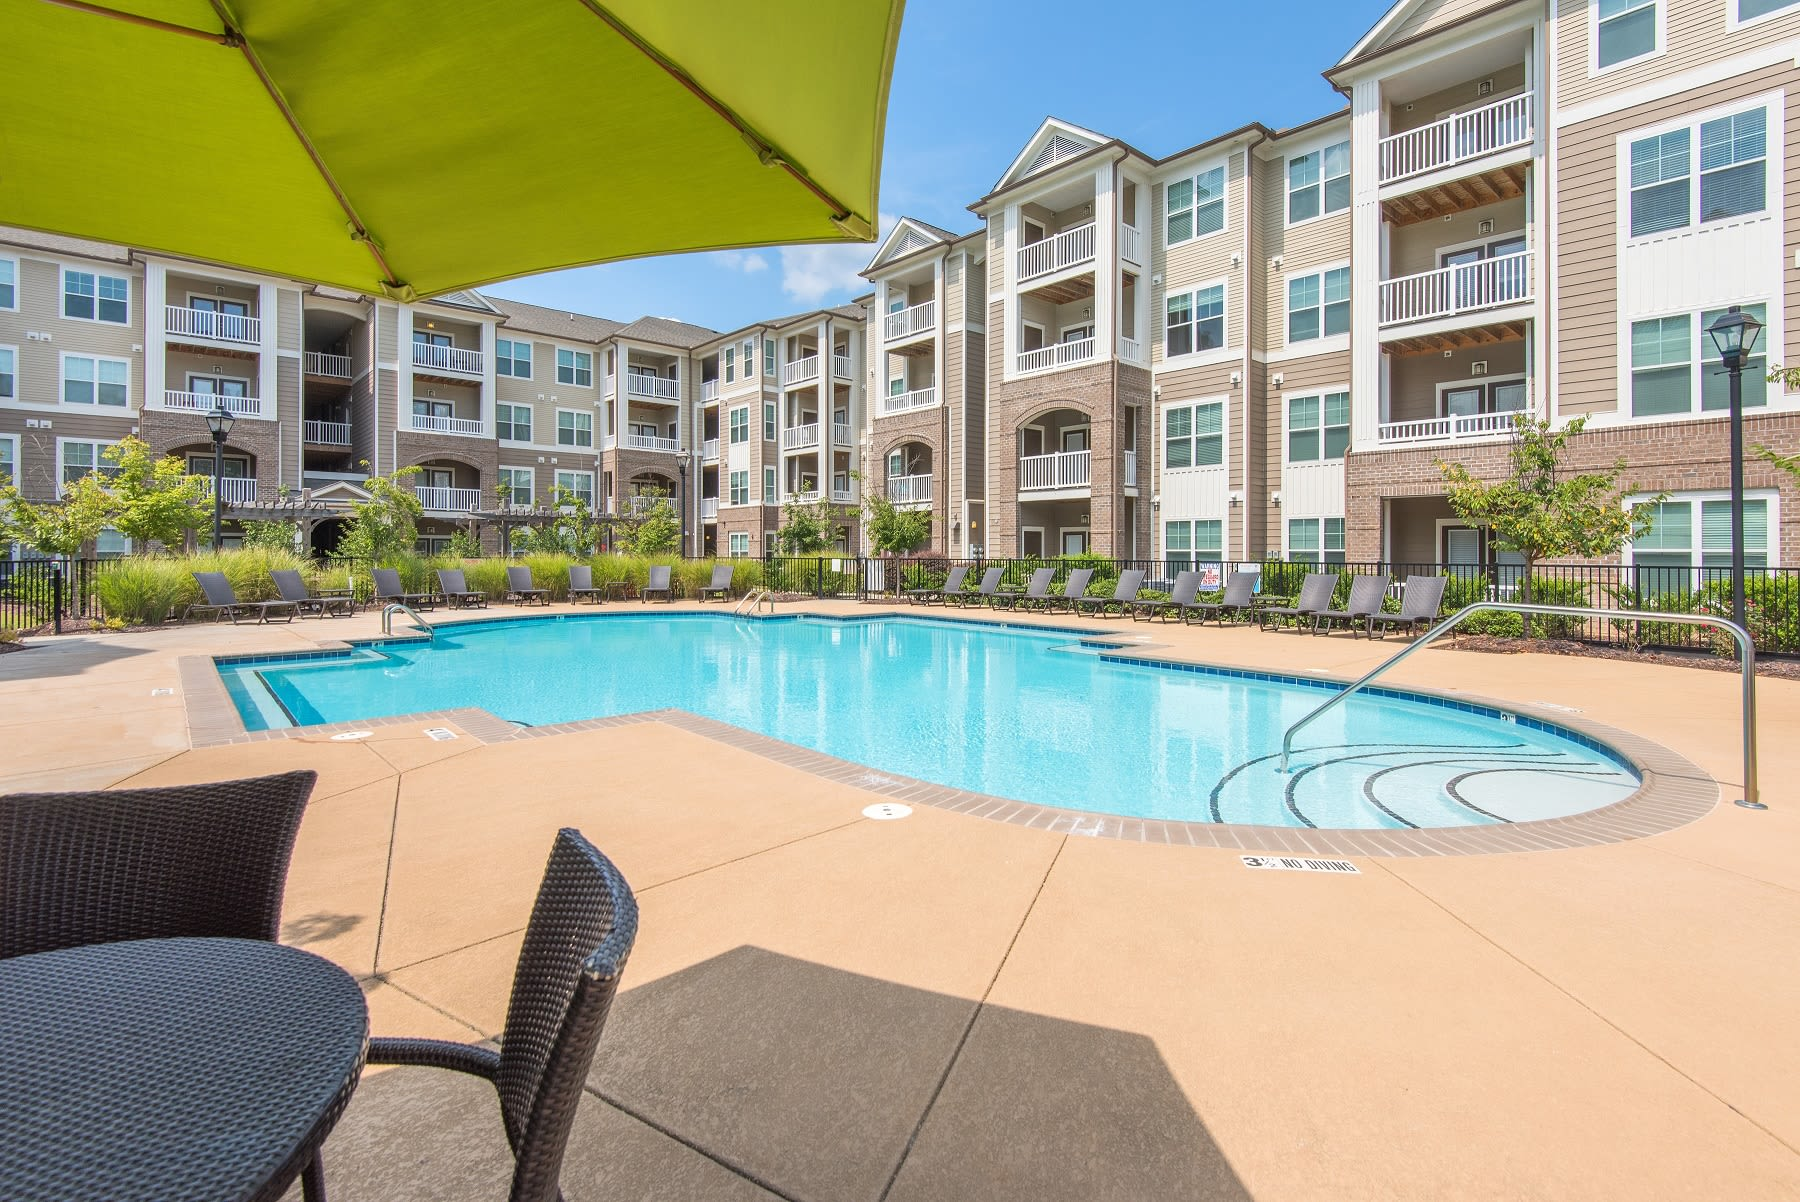 Sterling Town Center offers a spacious swimming pool in Raleigh, North Carolina